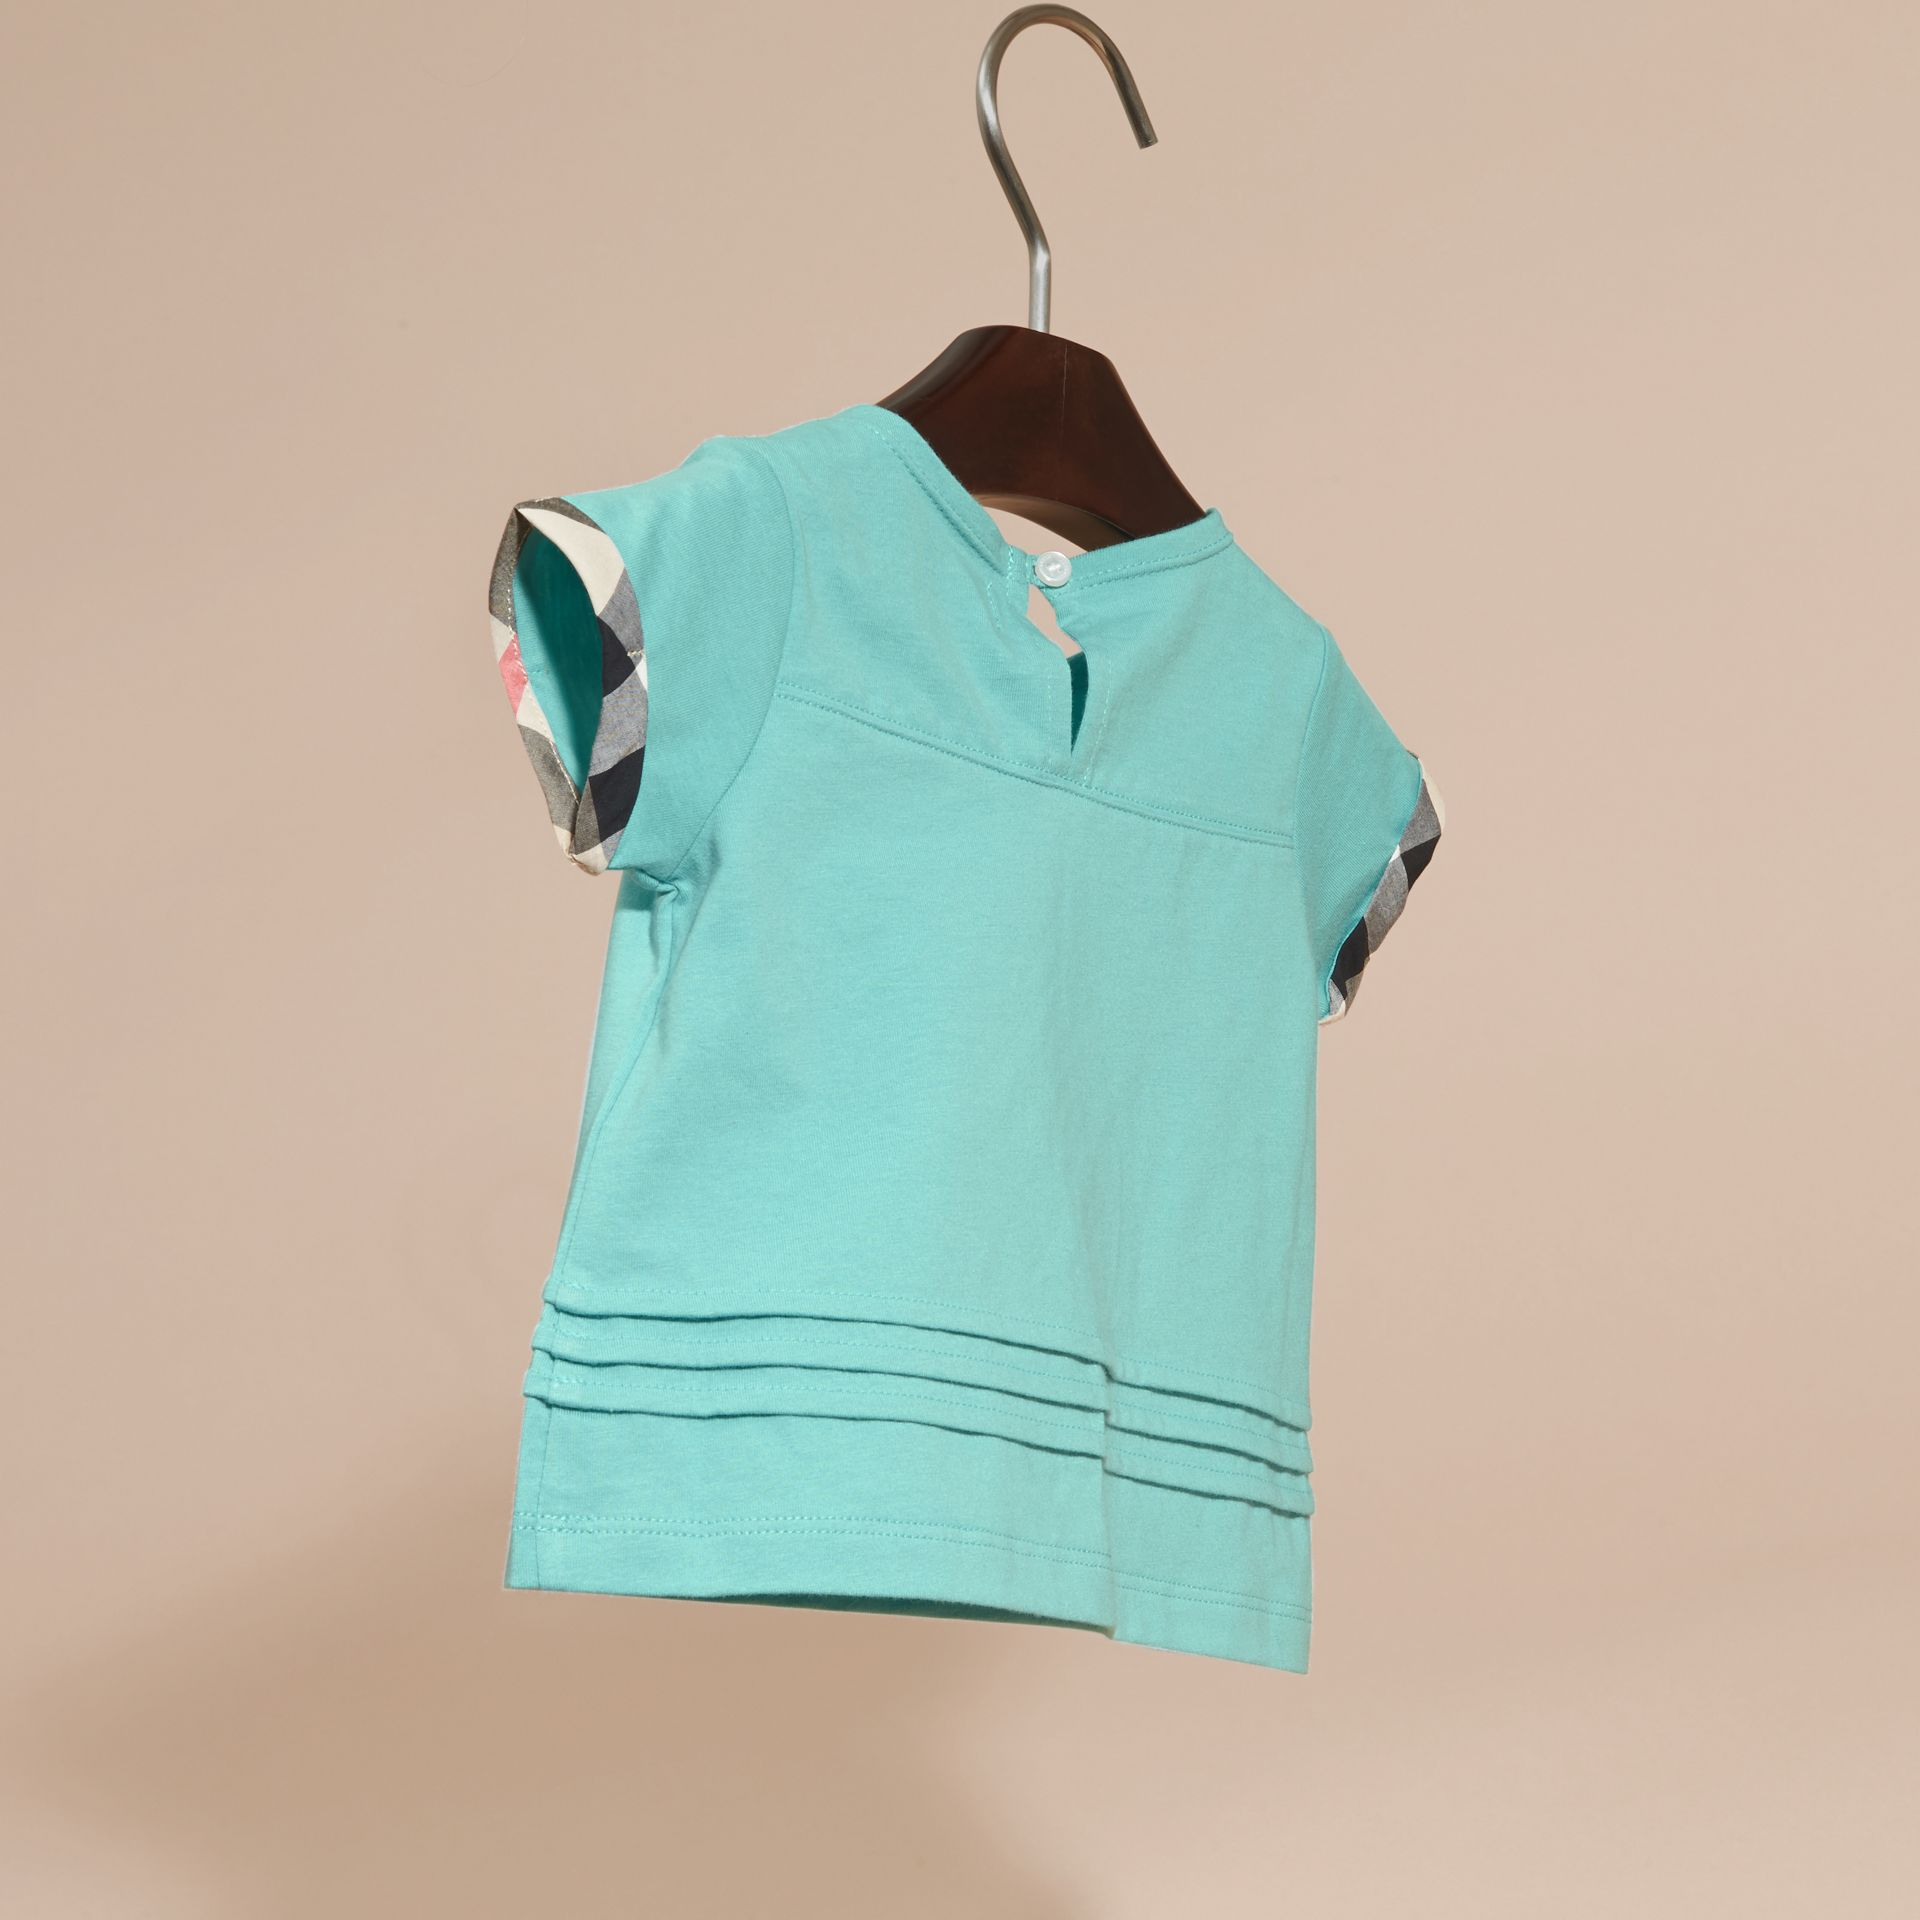 Pale turquoise Check Detail Cotton T-shirt - gallery image 4